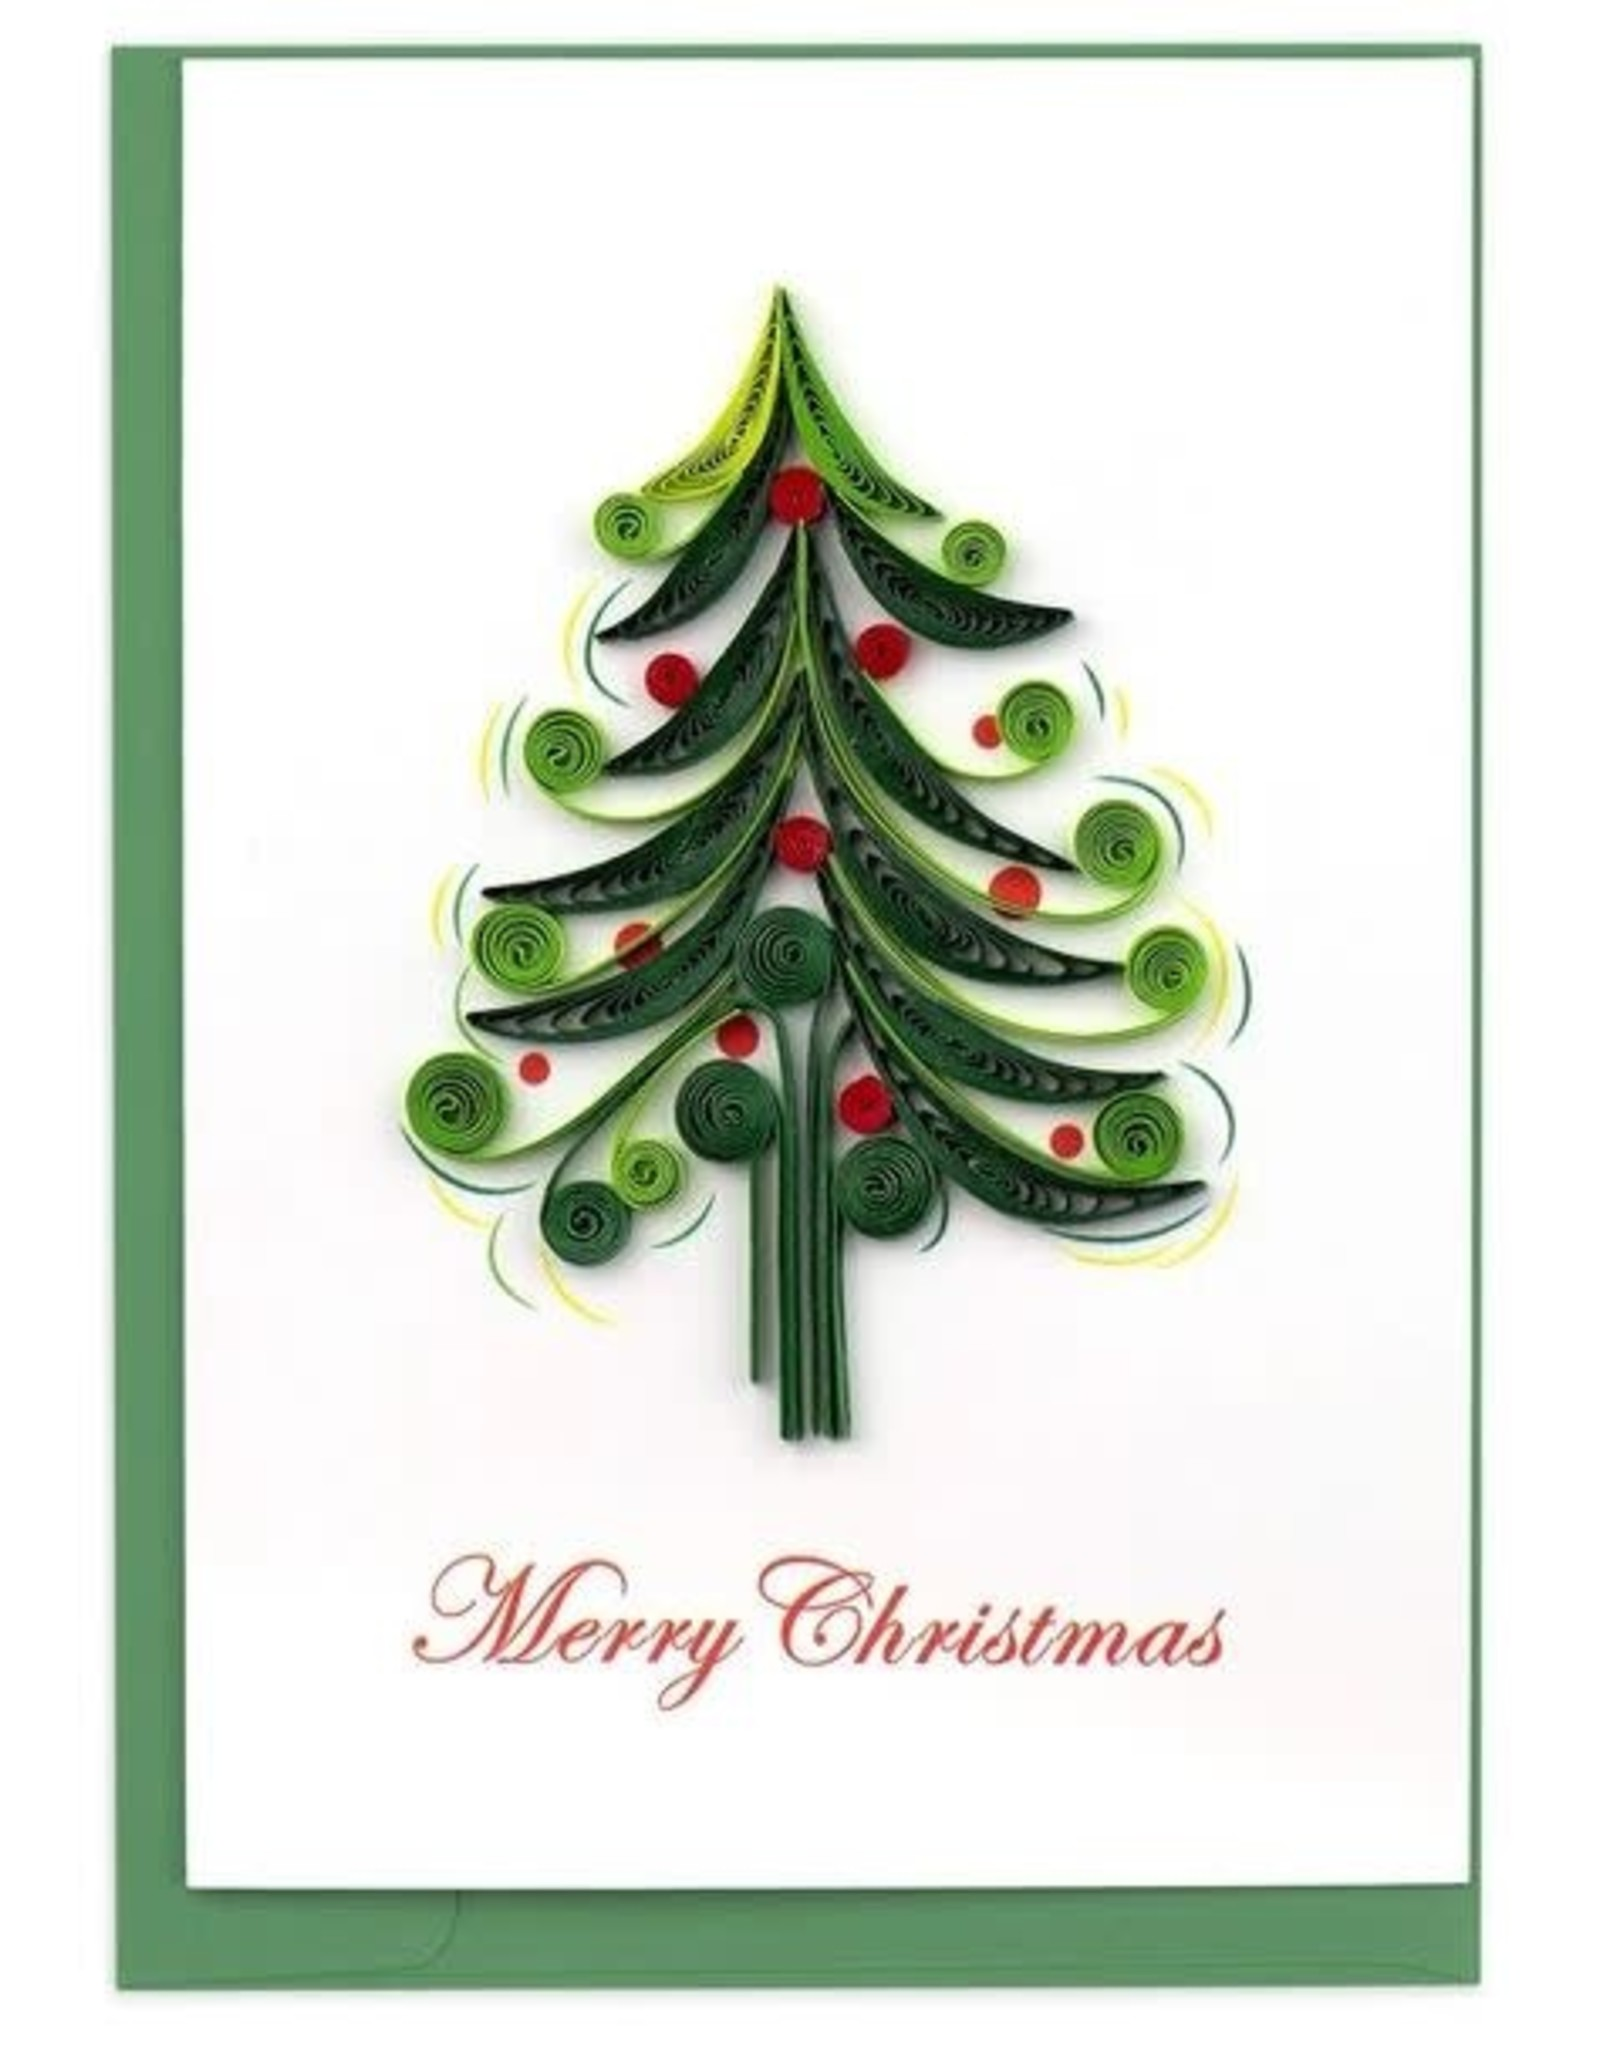 quillingcard Quilled Christmas Tree Card